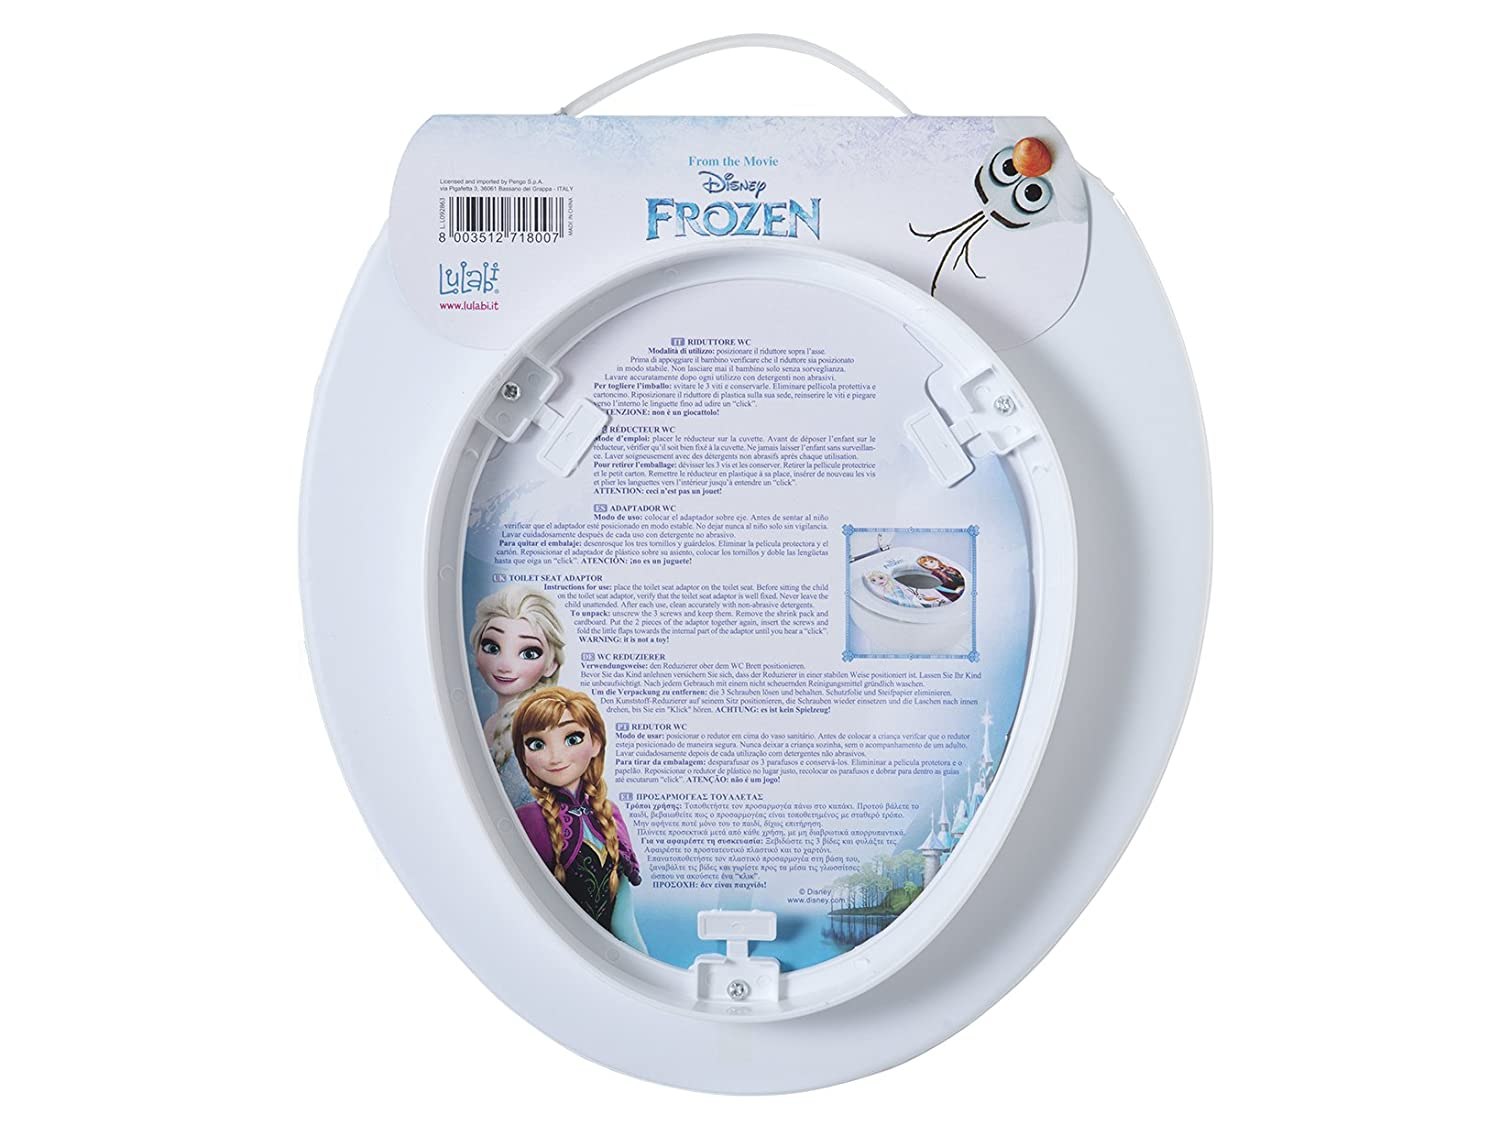 lulabi 8007/ Disney Frozen Toilettensitz soft mehrfarbig